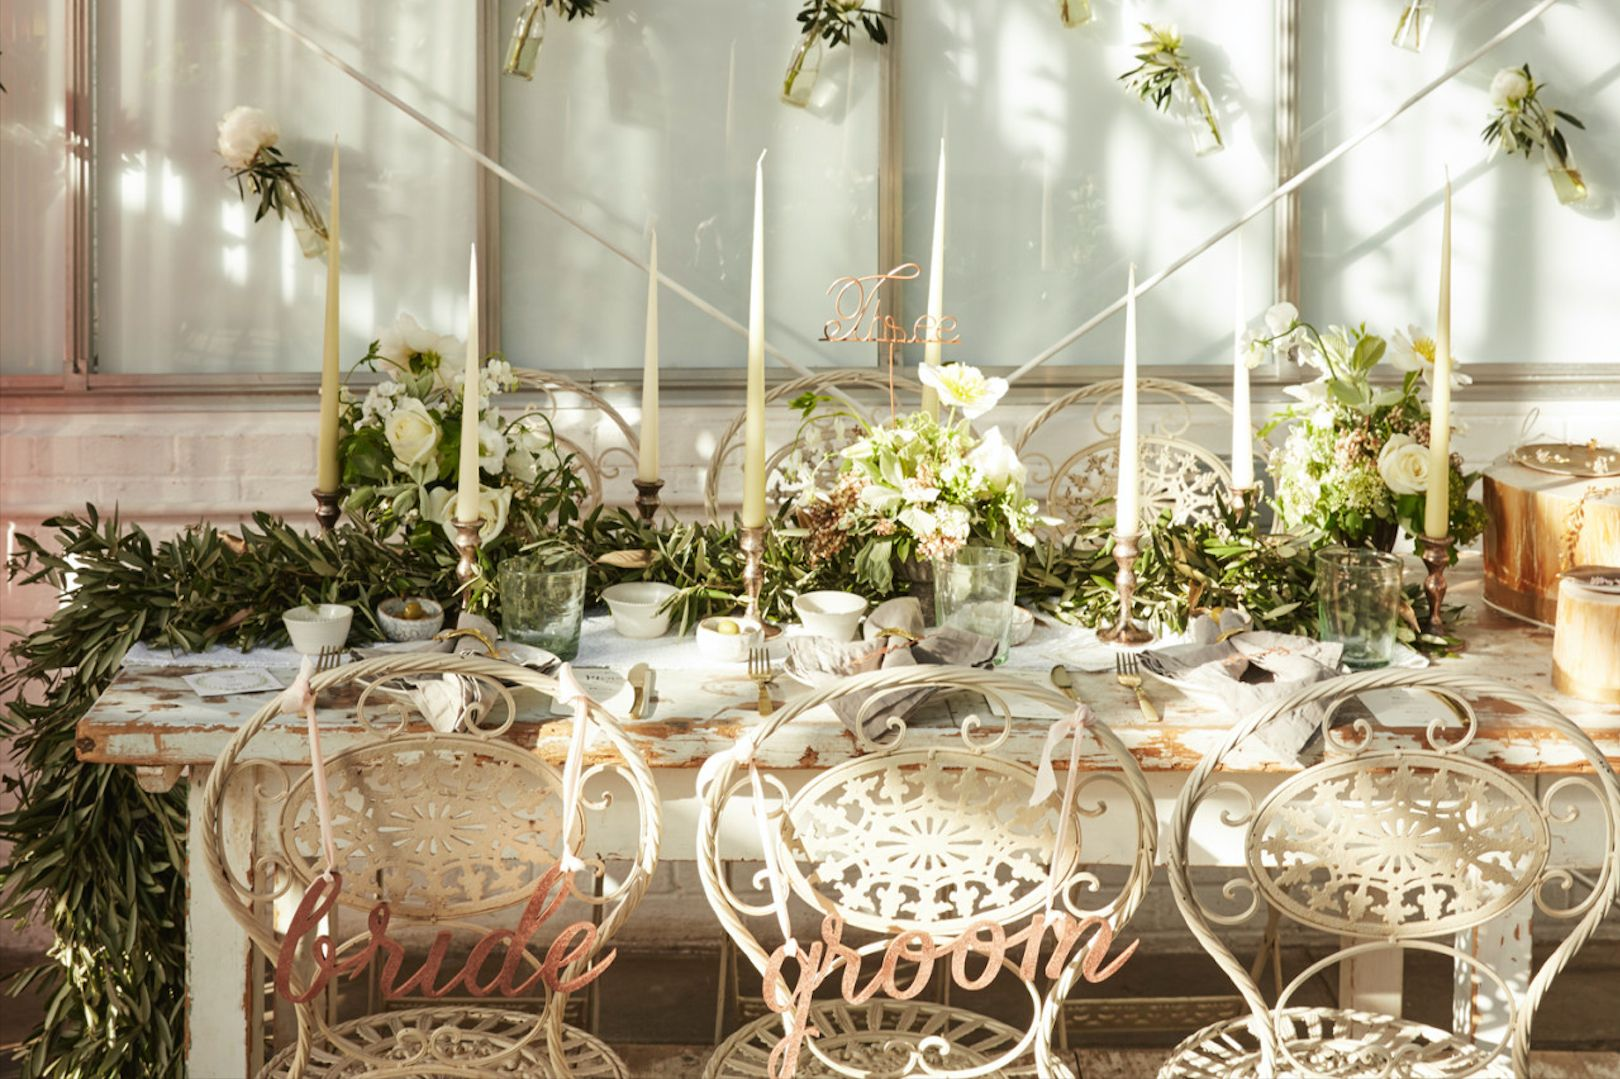 Grecian Wedding Theme With Summer 2017 Fast Approaching For All Of